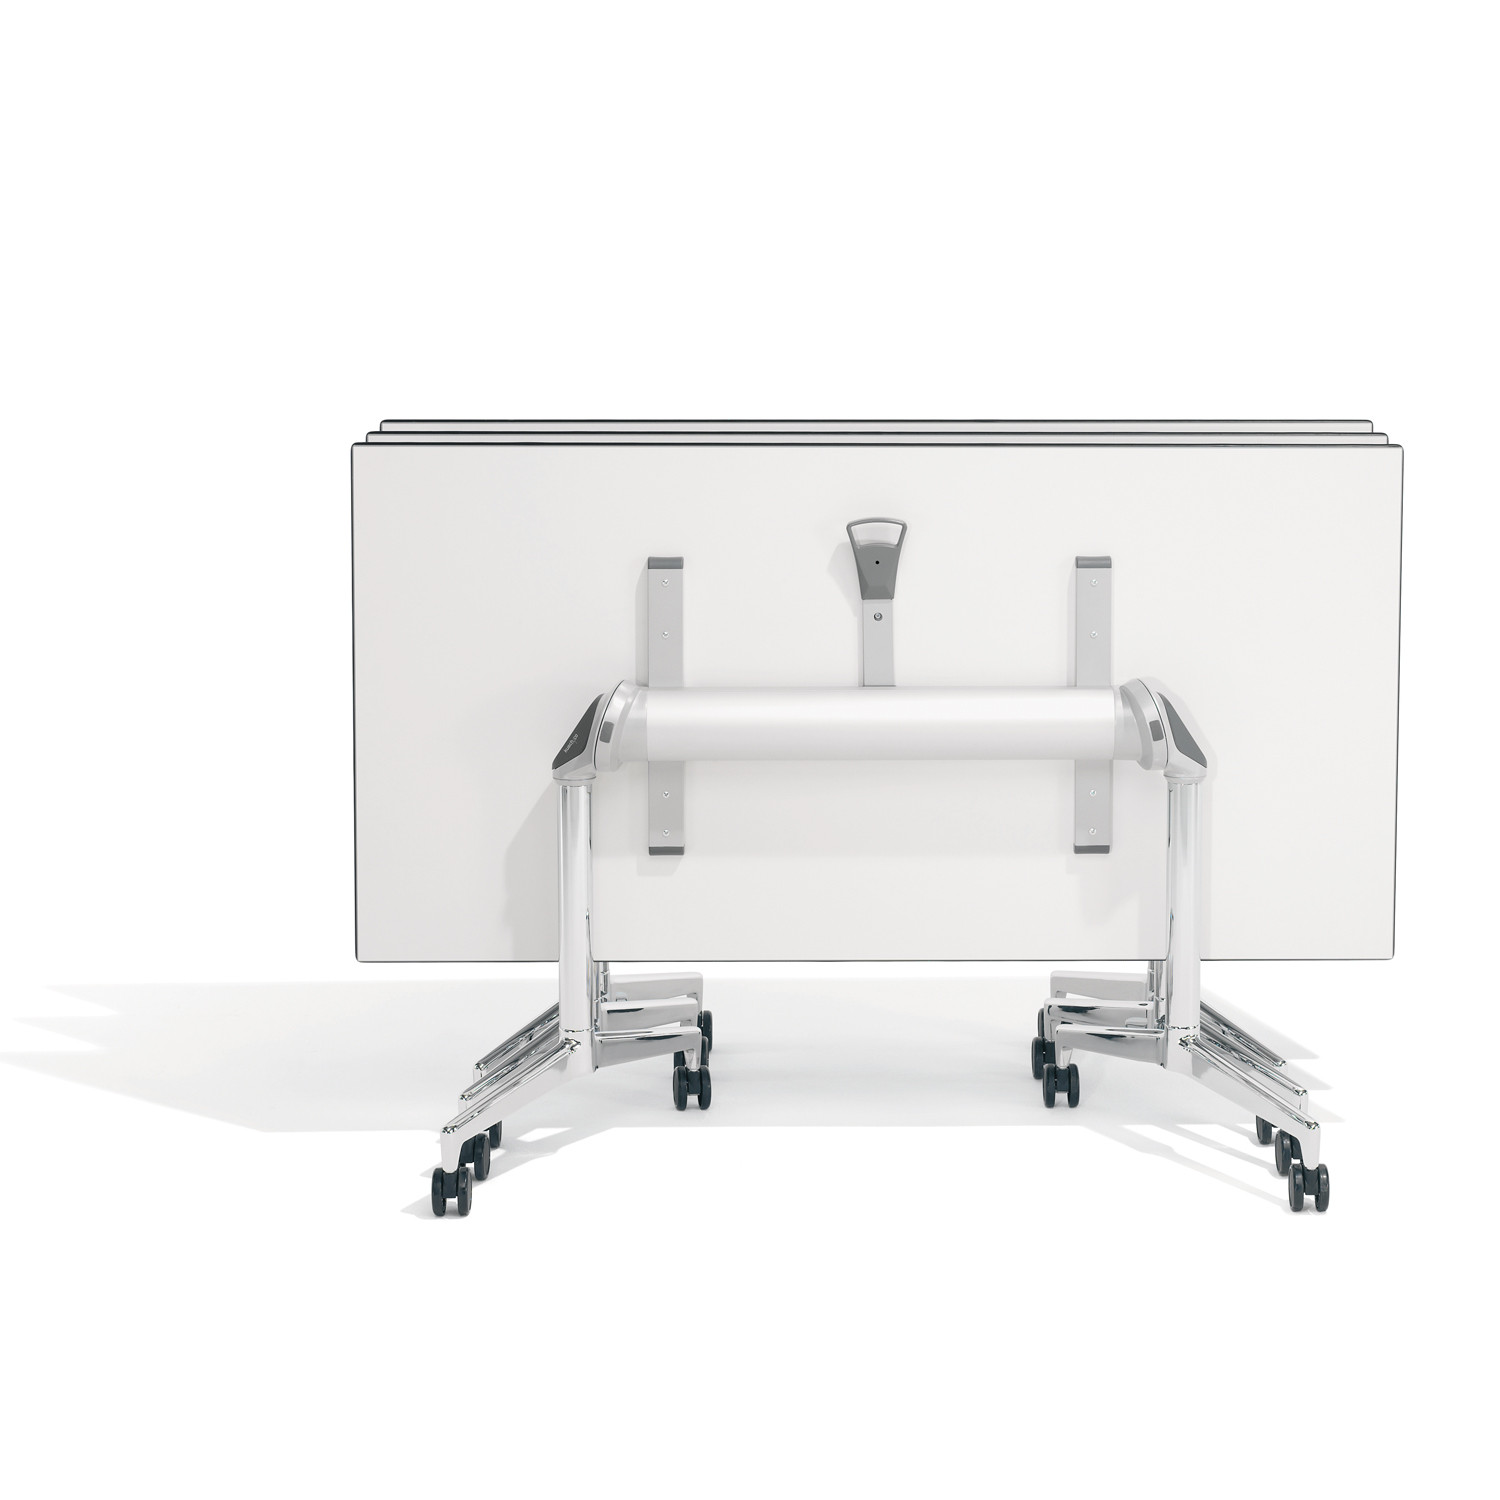 9000 Roll 'n' Meet Mobile Folding Tables